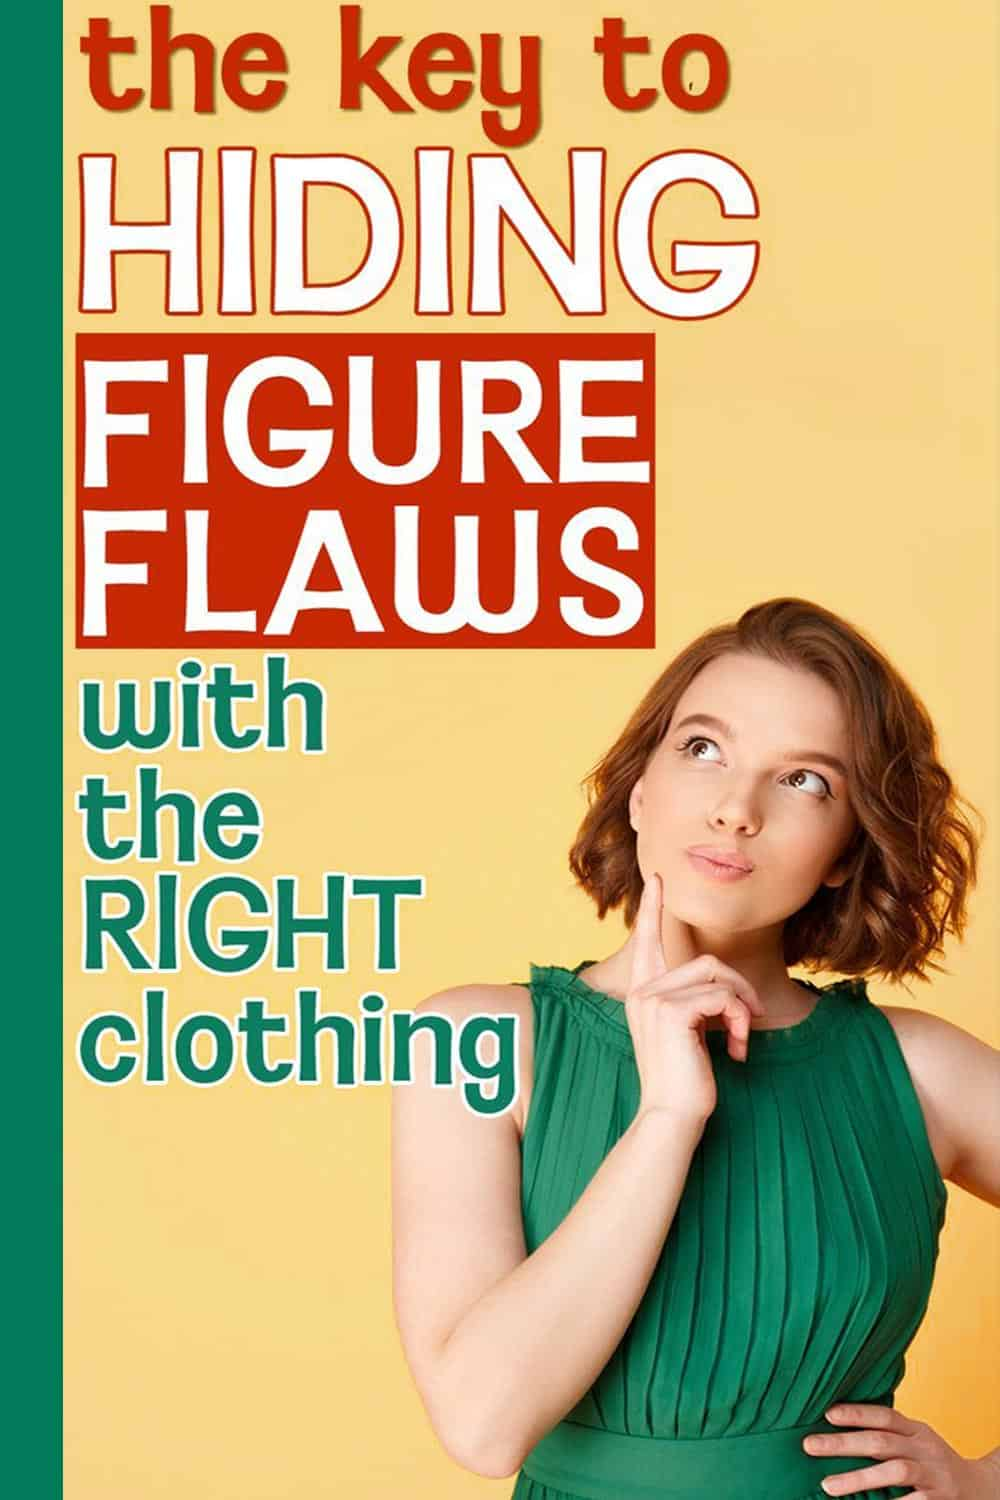 How to dress well: flattering clothes that hide figure flaws